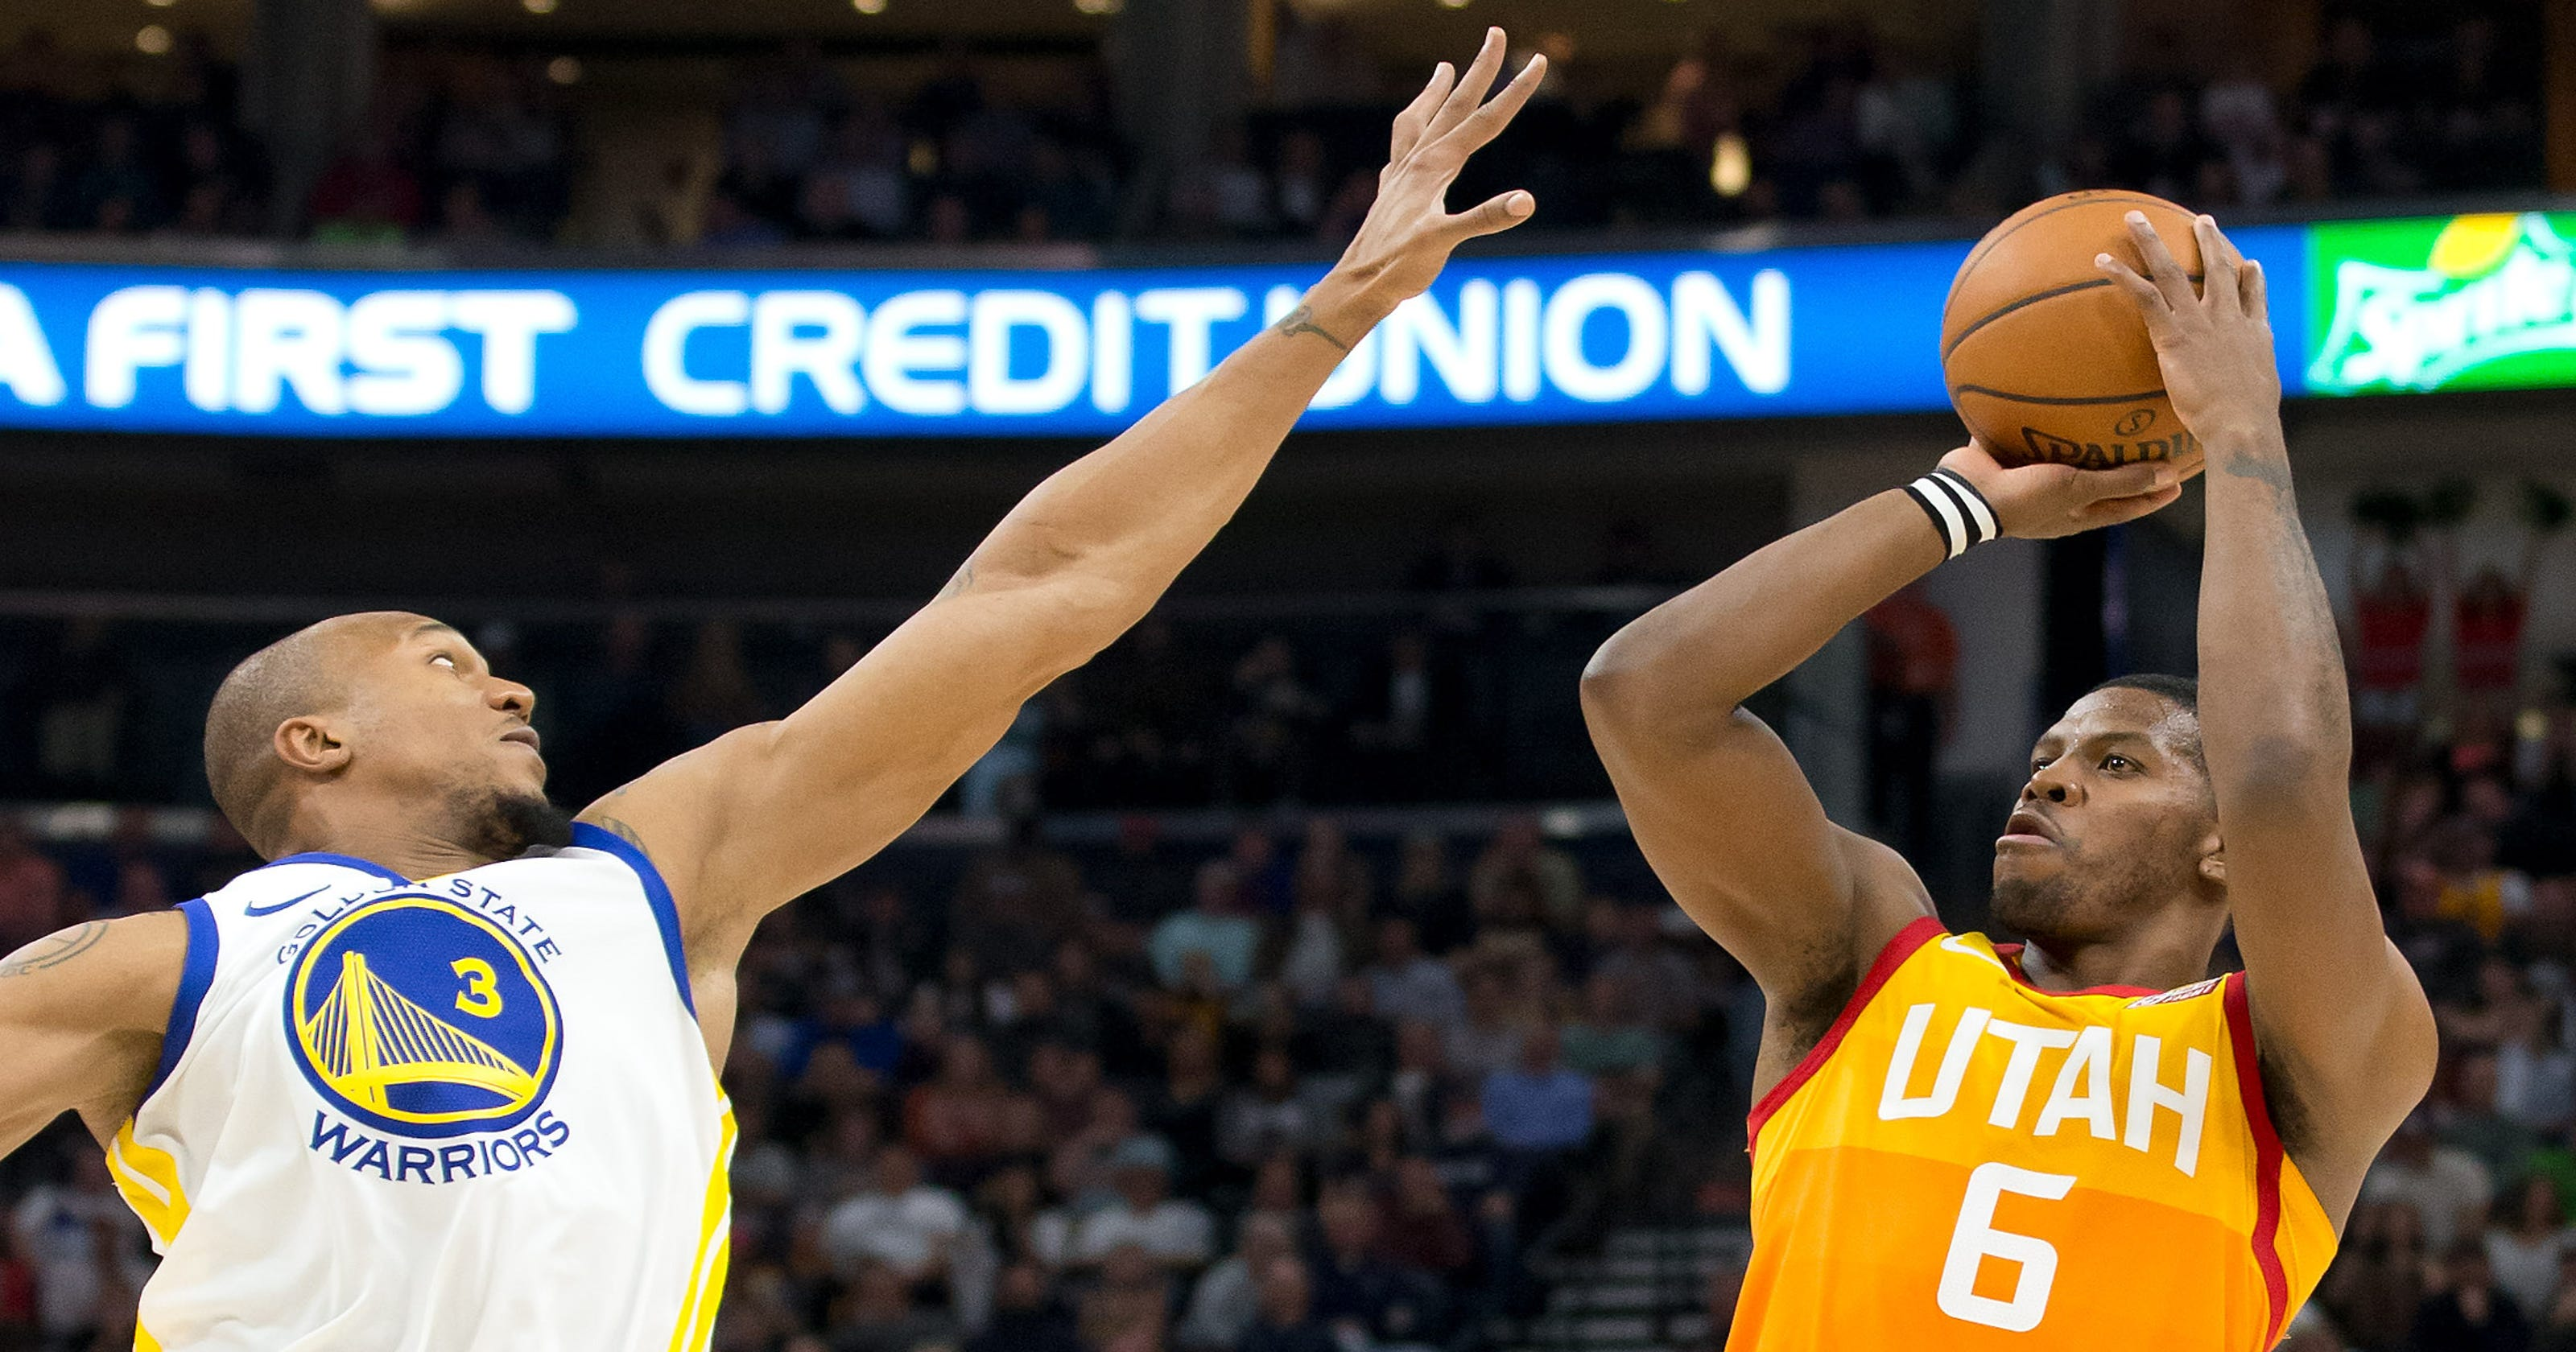 ddd437a2d Utah Jazz stun Golden State Warriors